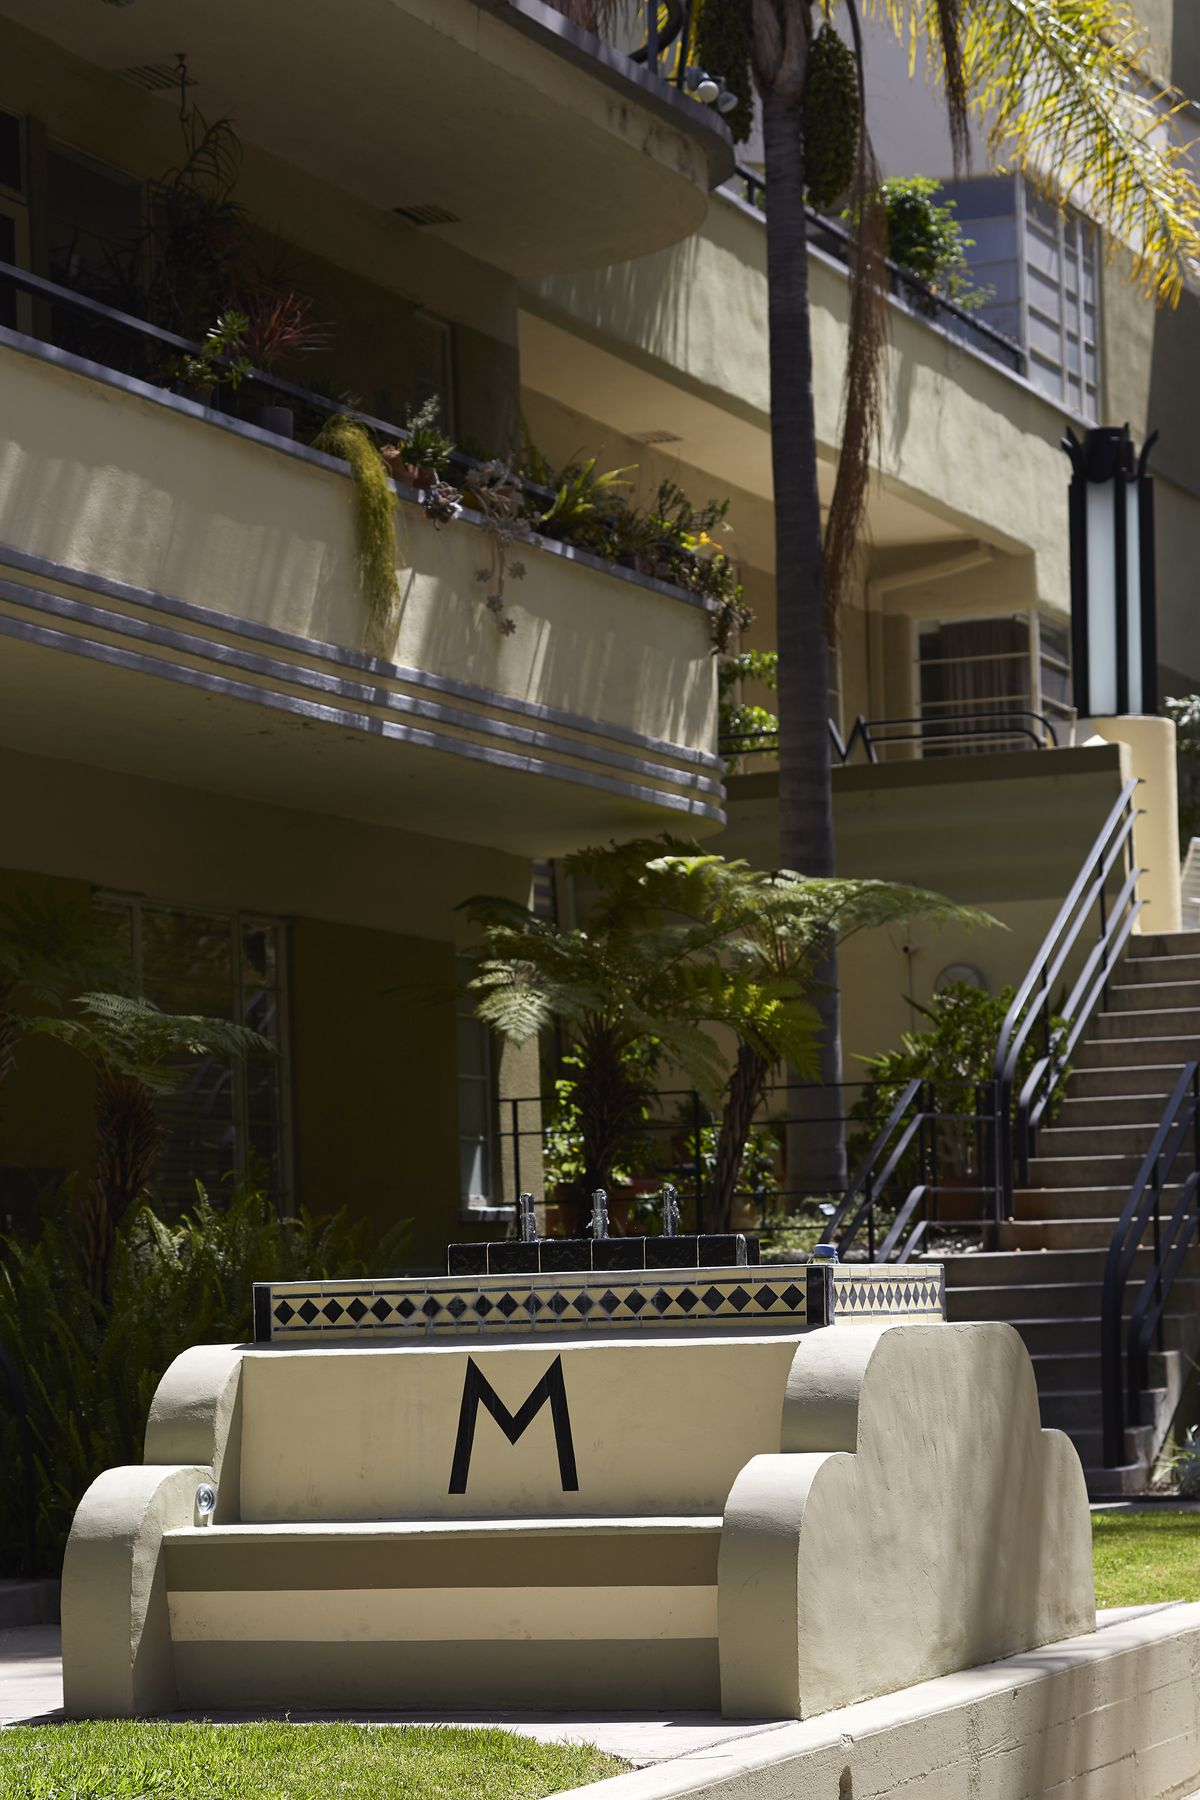 13 glamorous apartments from Hollywood\'s Golden Age - Curbed LA